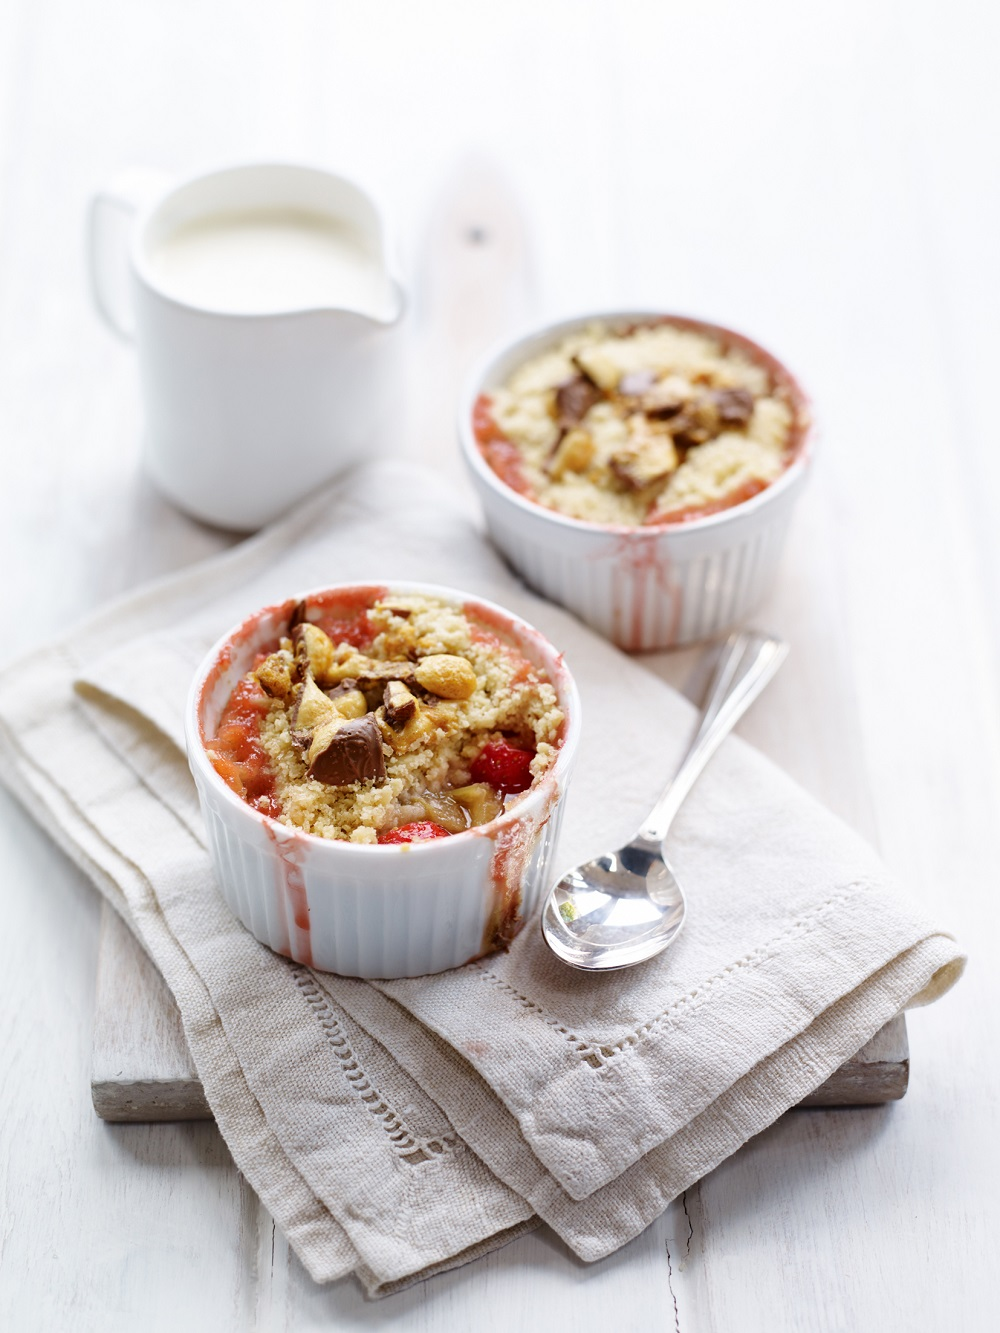 How To Make A BerryWorld Strawberry And Rhubarb Crumble